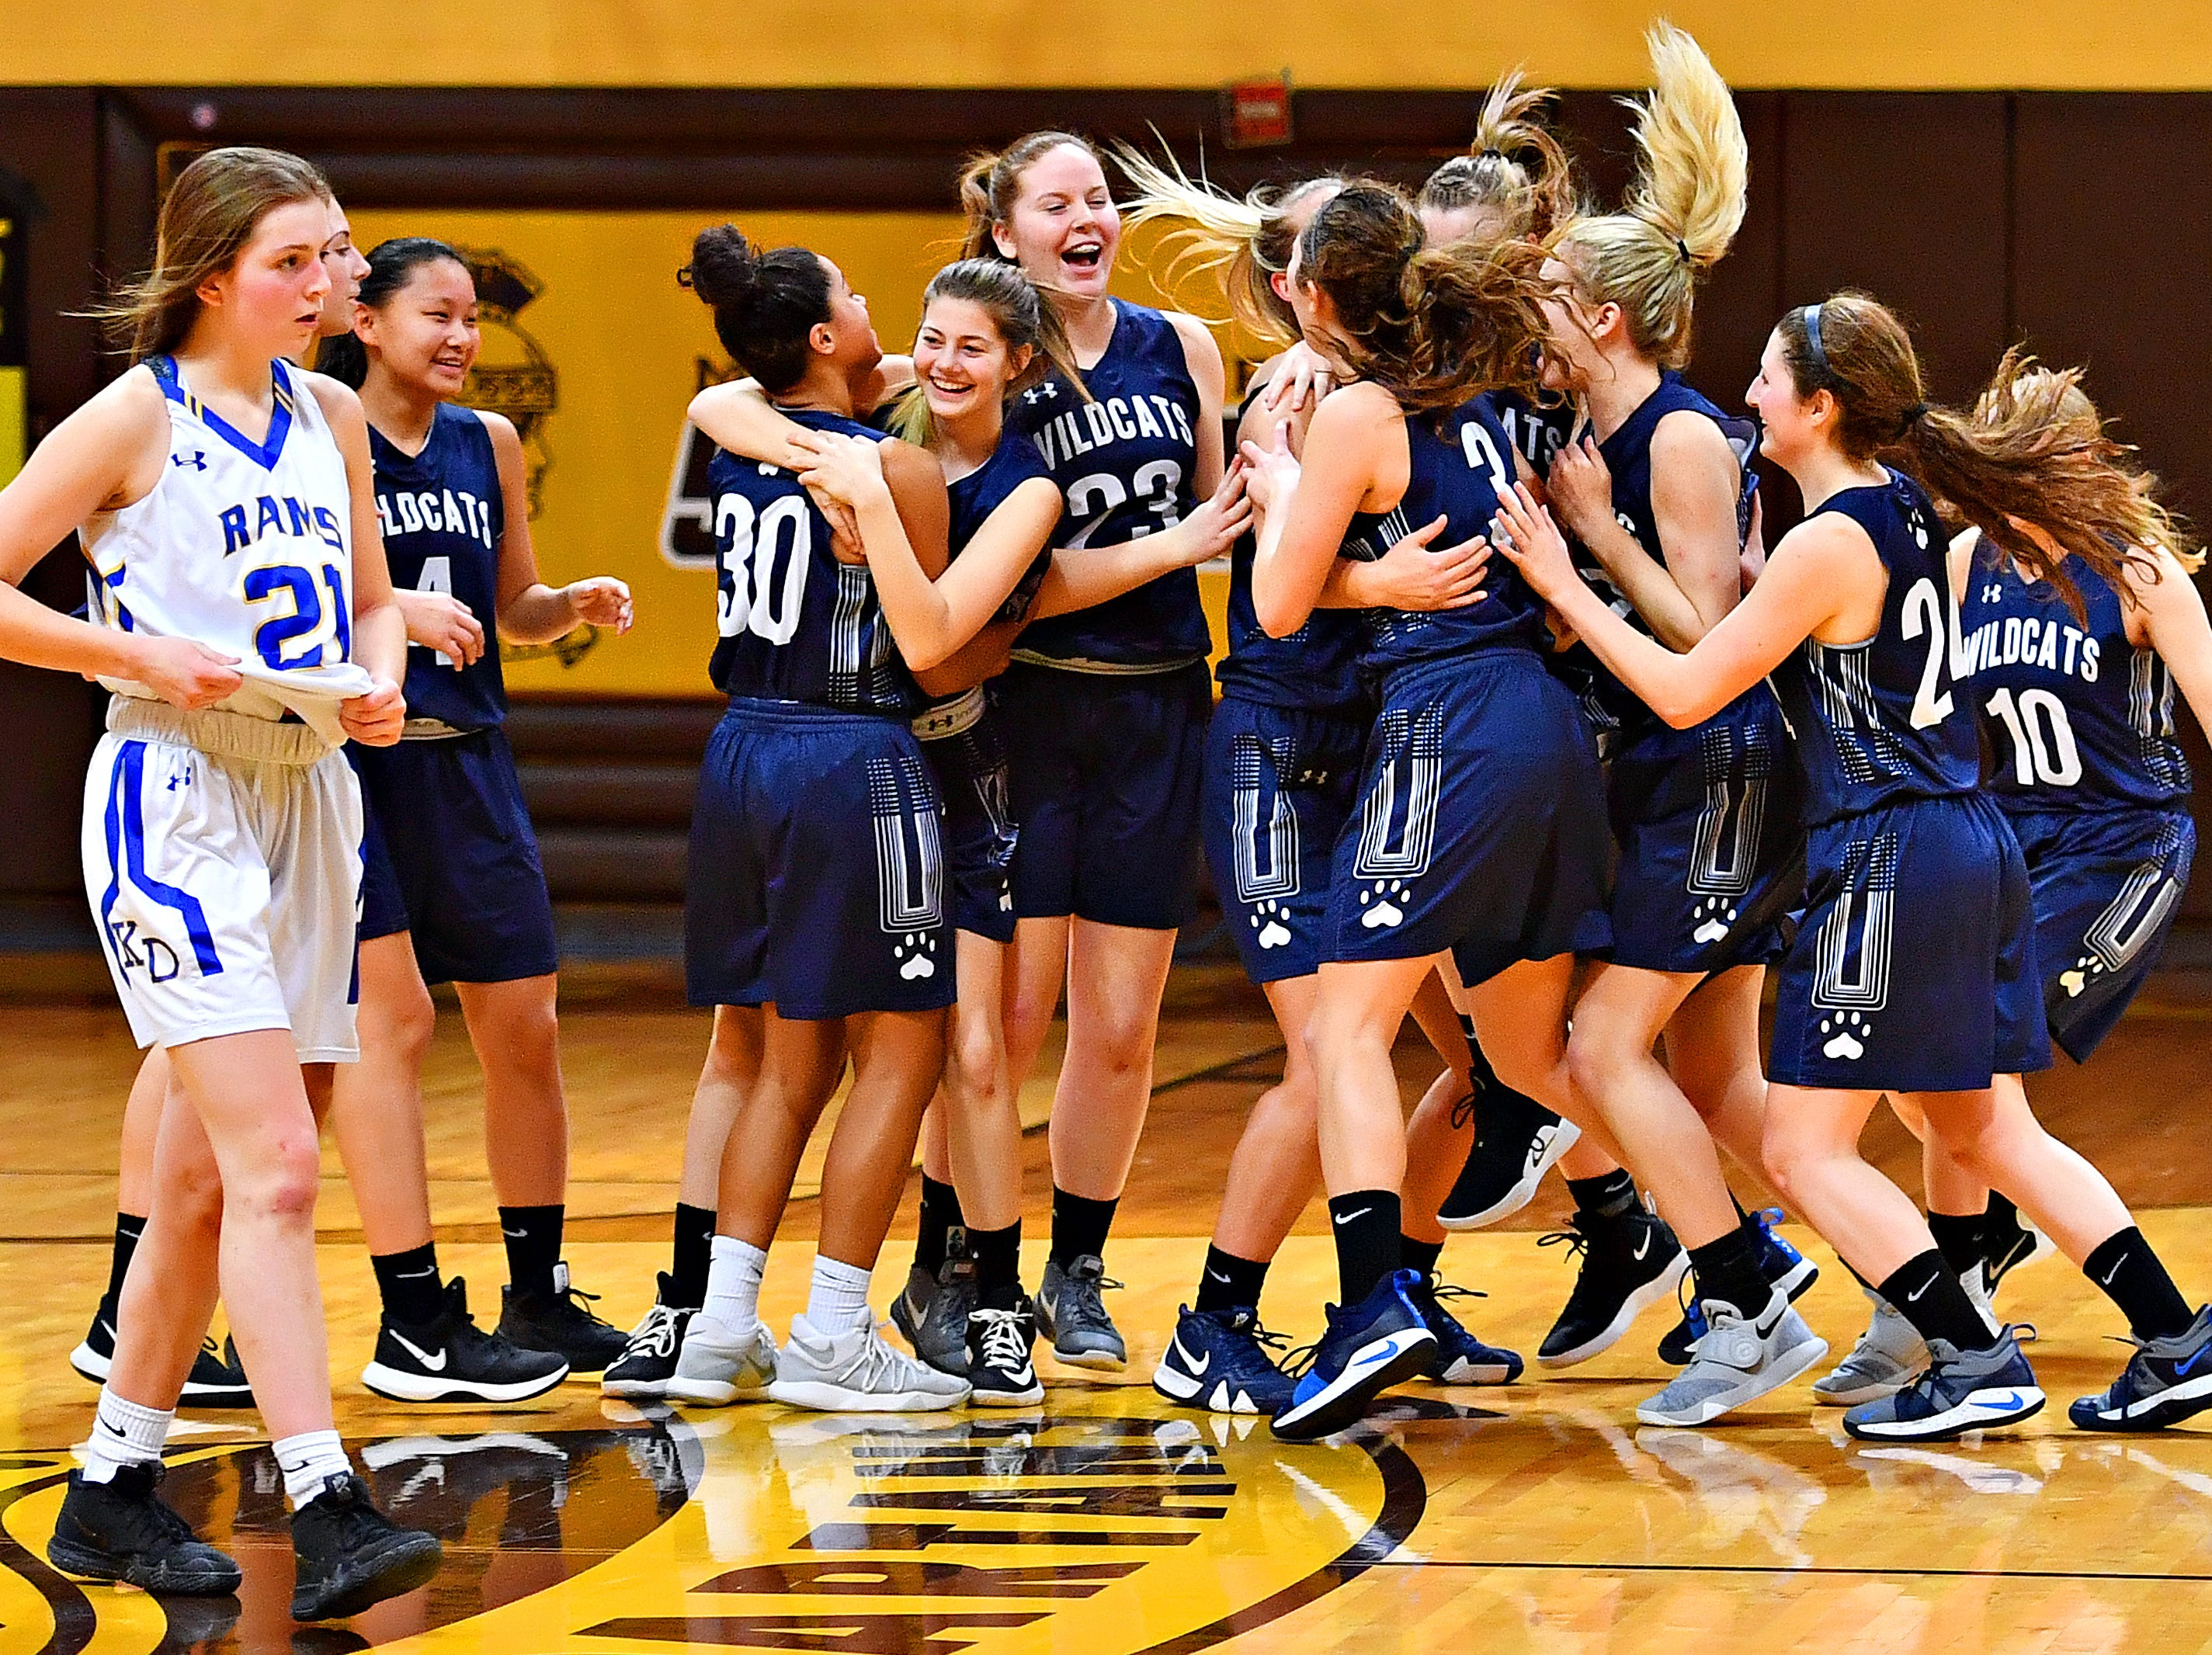 Mifflinburg celebrates a 51-45 win over Kennard-Dale during PIAA Class 4-A girl's basketball second round at Milton Hershey High School in Hershey, Wednesday, March 13, 2019. Dawn J. Sagert photo